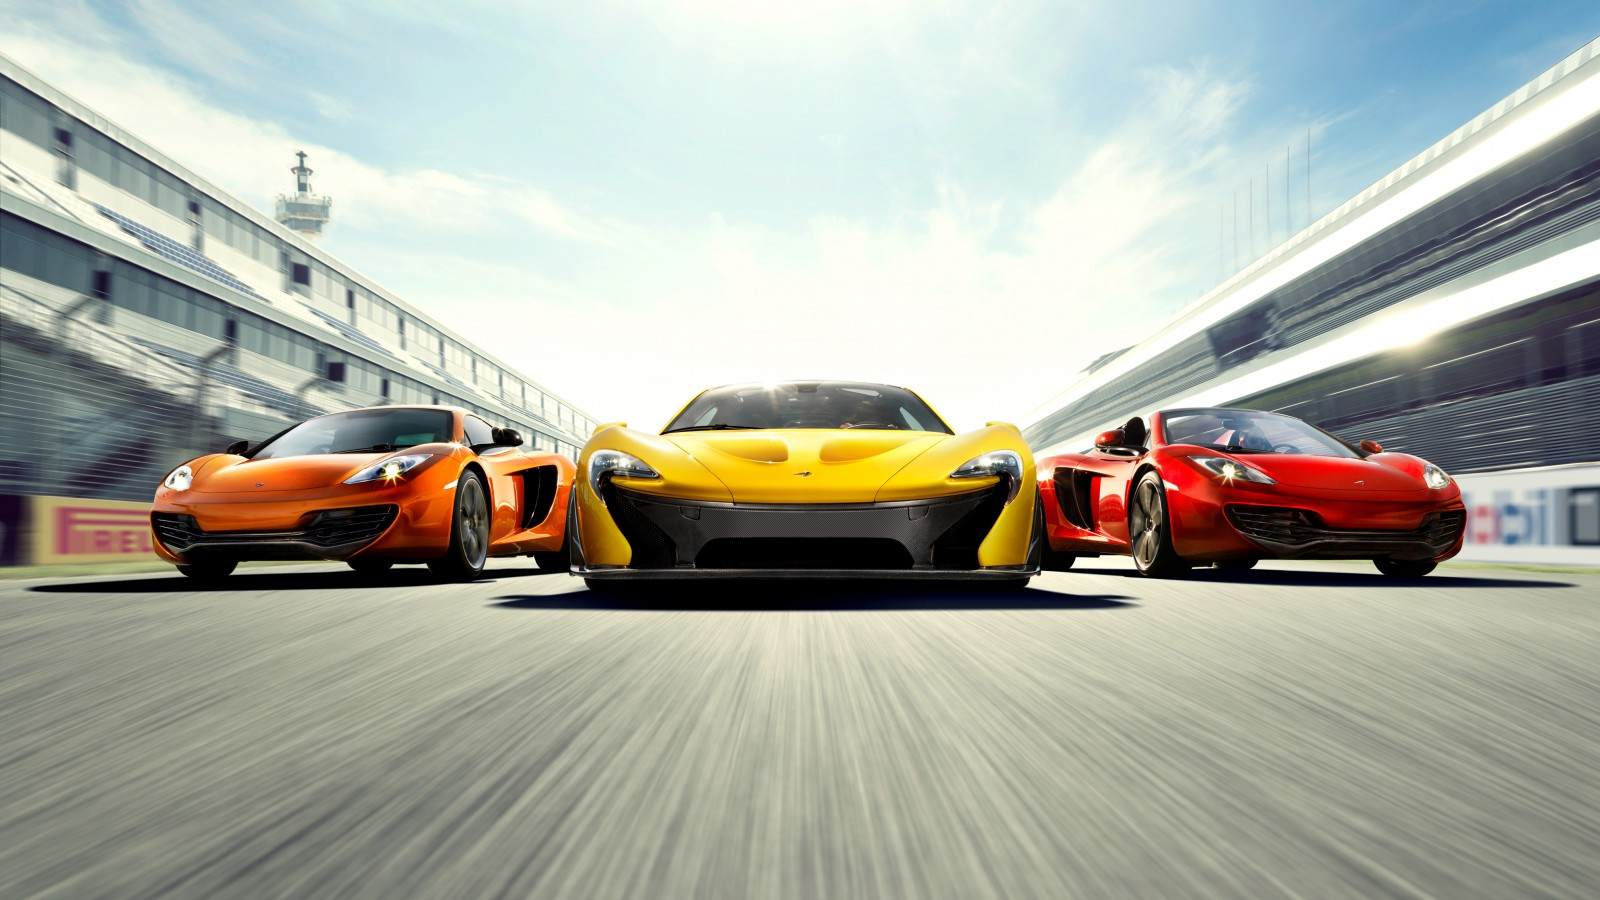 McLaren P1 Supercars 4K Wallpaper